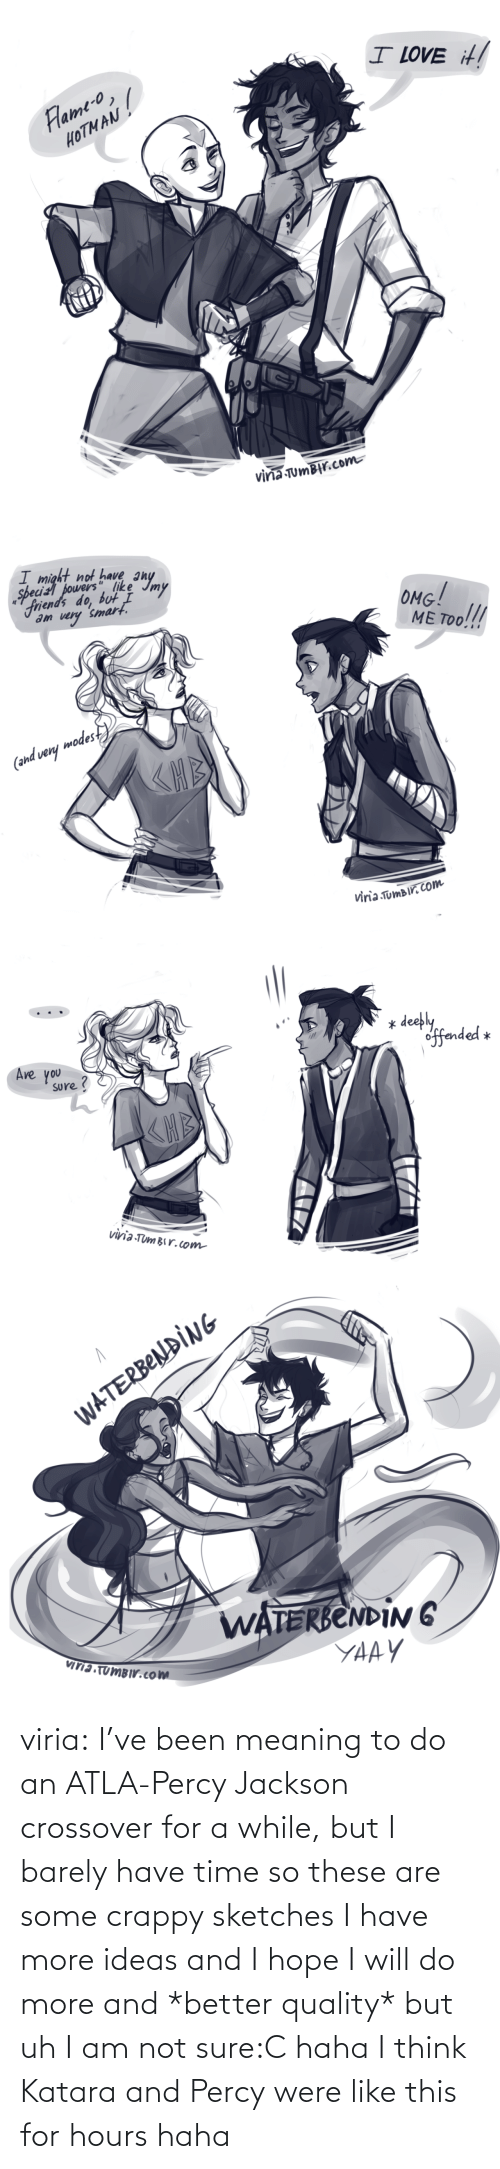 for: viria:  I've been meaning to do an ATLA-Percy Jackson crossover for a while, but I barely have time so these are some crappy sketches I have more ideas and I hope I will do more and *better quality* but uh I am not sure:C haha I think Katara and Percy were like this for hours haha